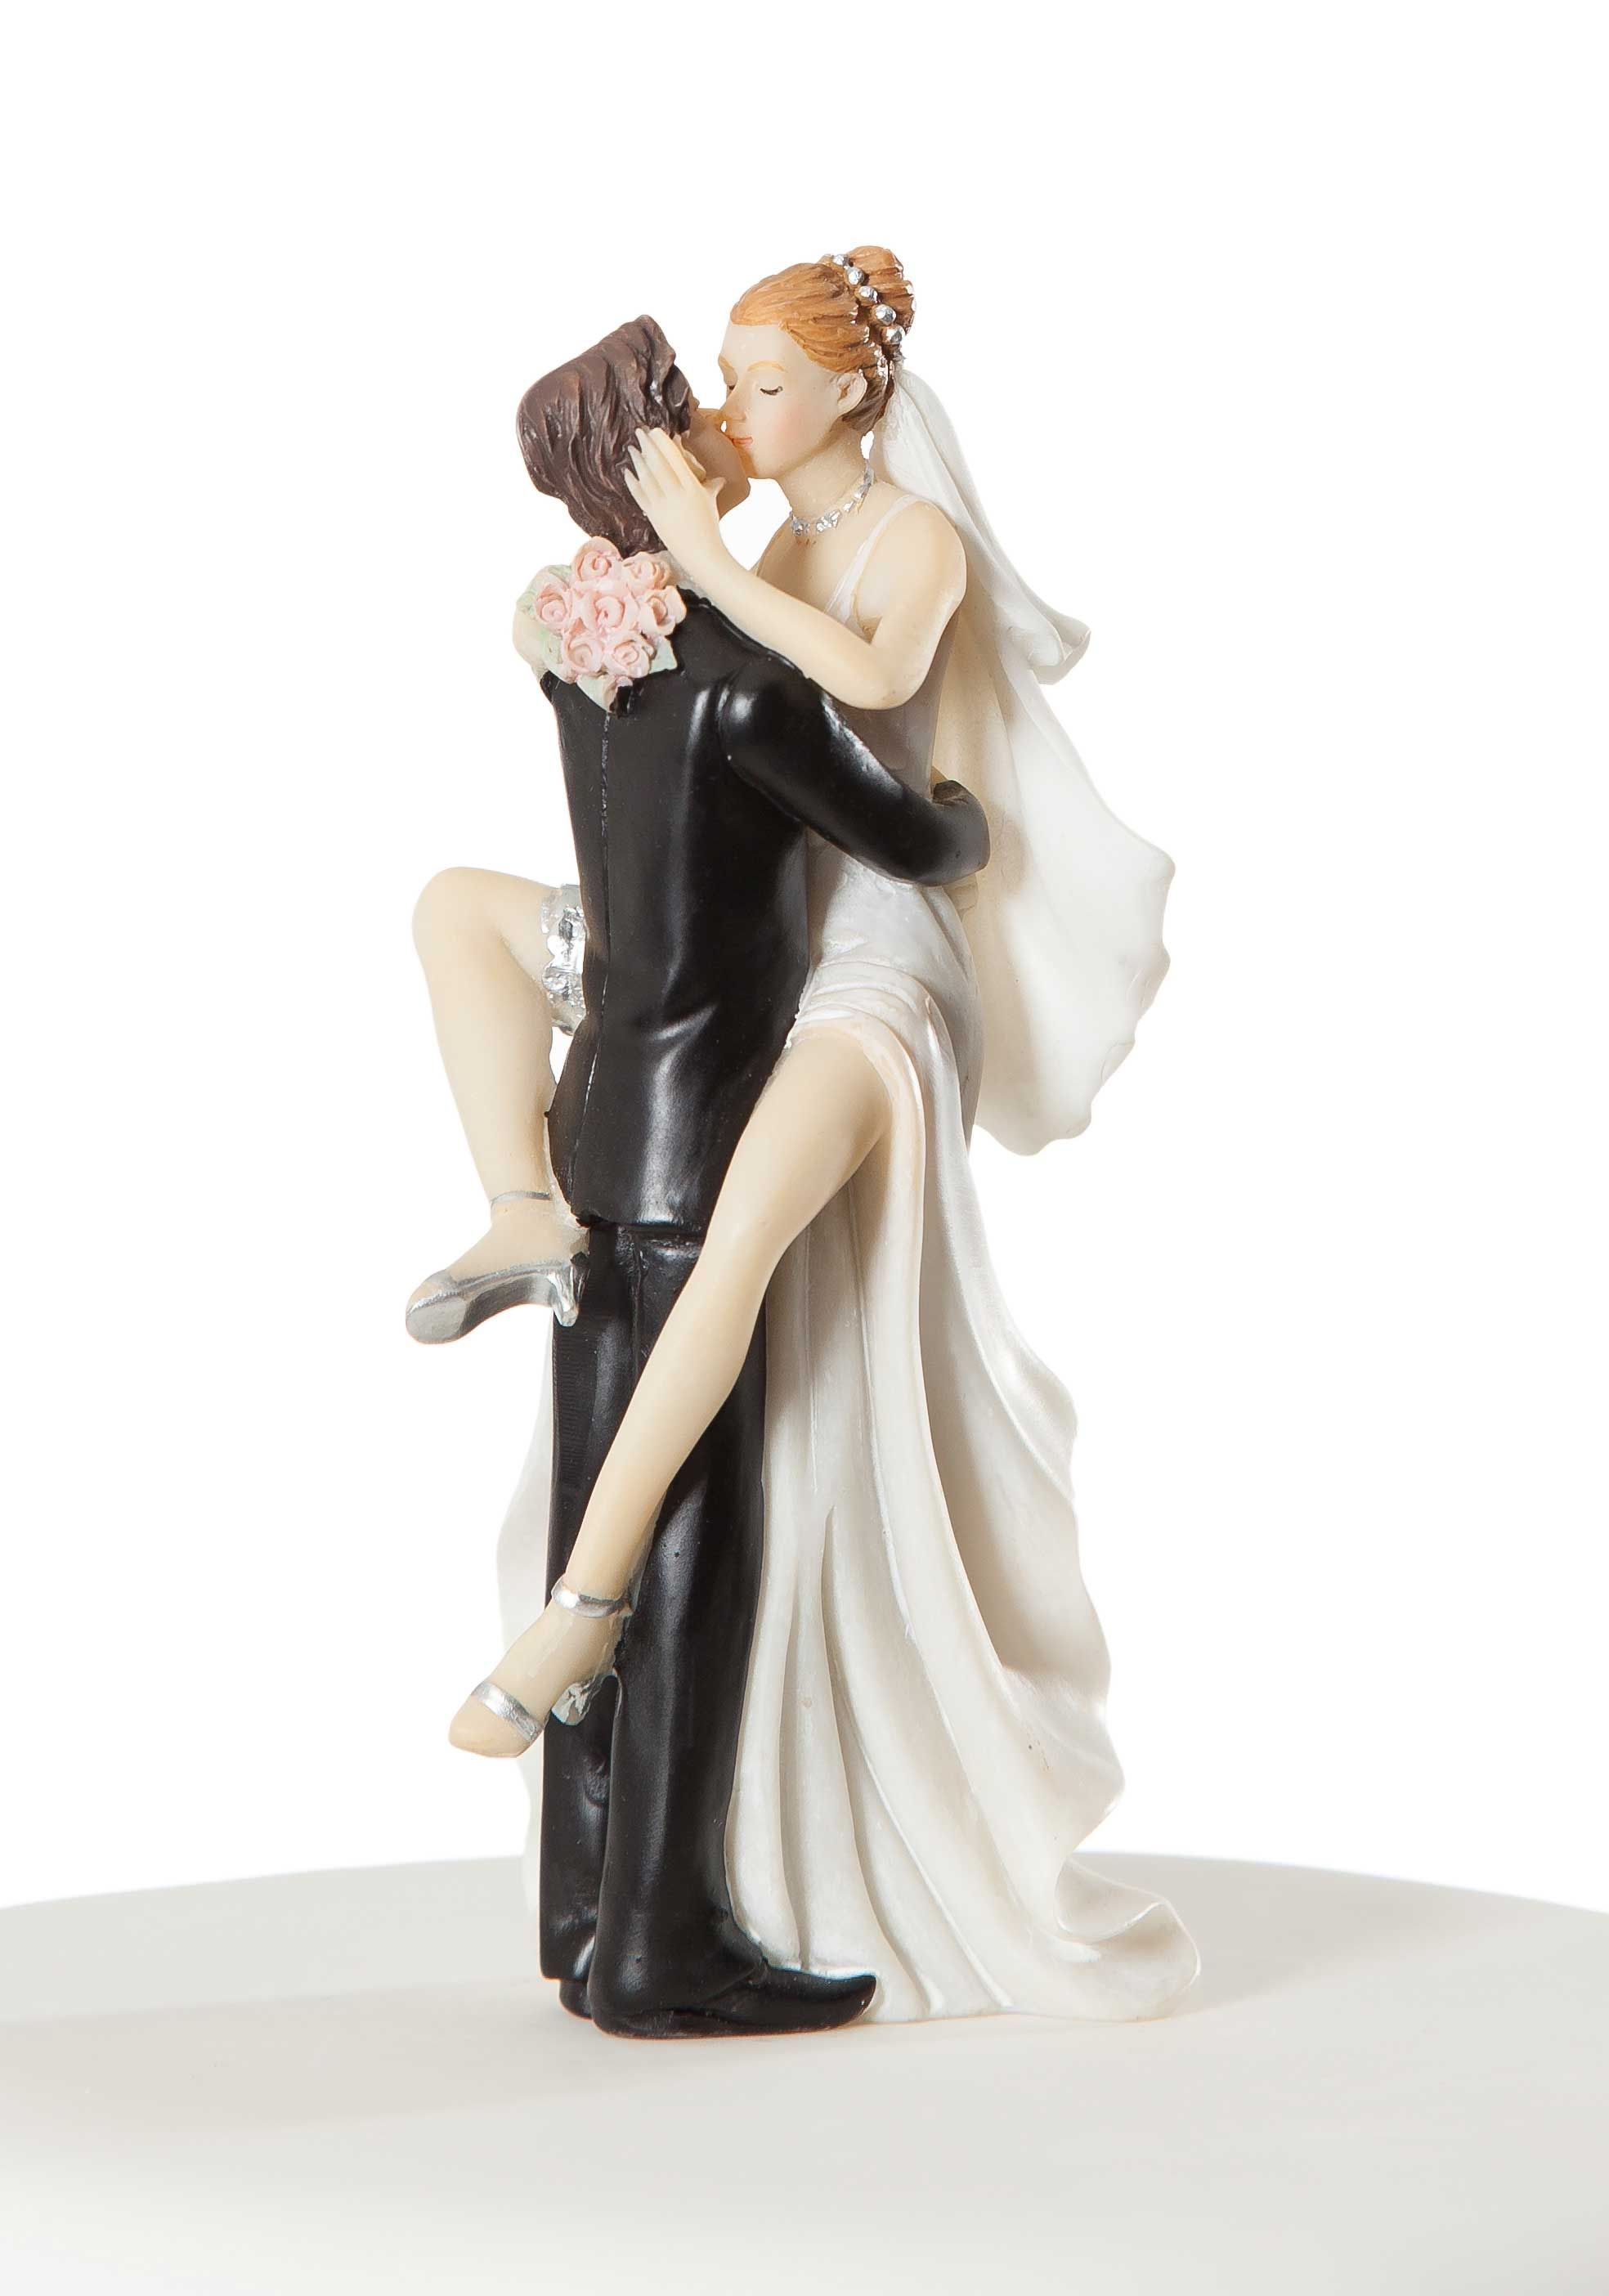 Quot Funny Sexy Quot Wedding Bride And Groom Cake Topper Figurine